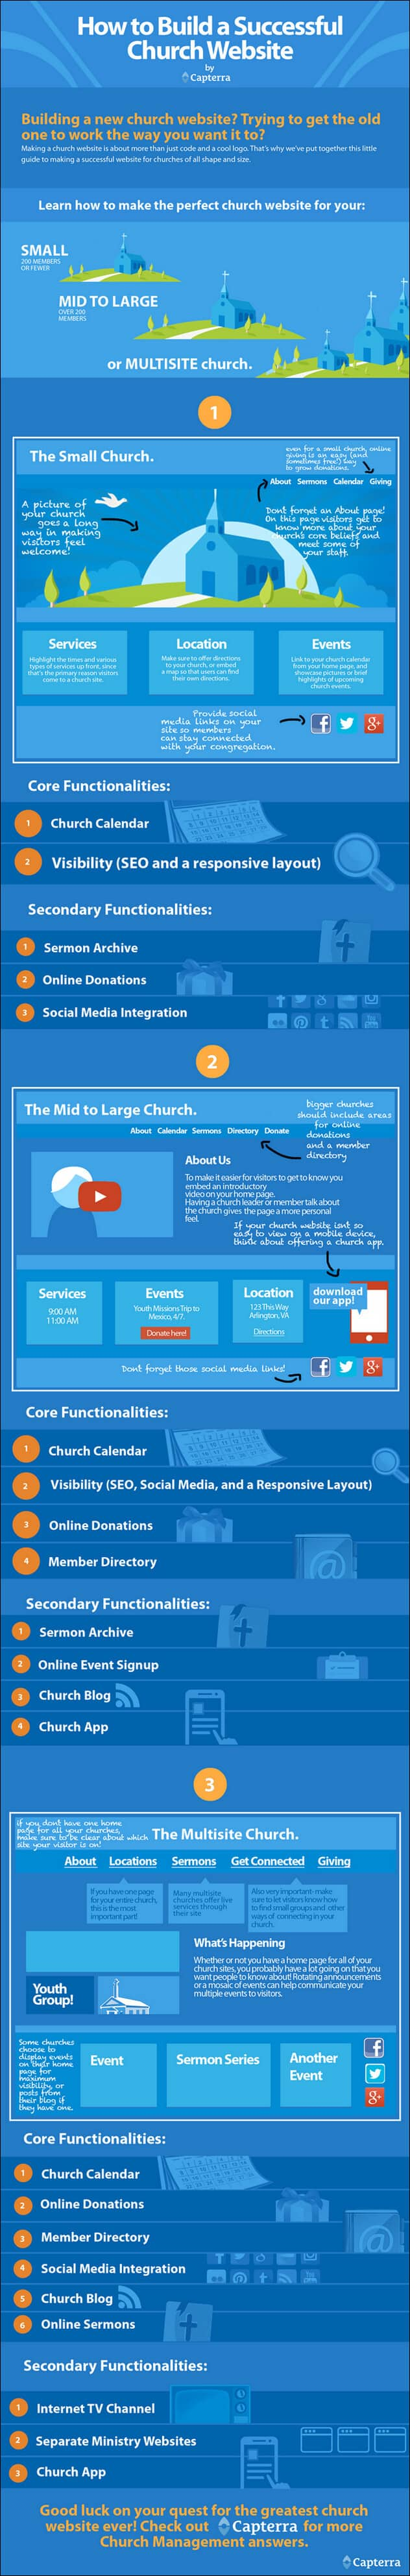 How to Build a Successful Church Website